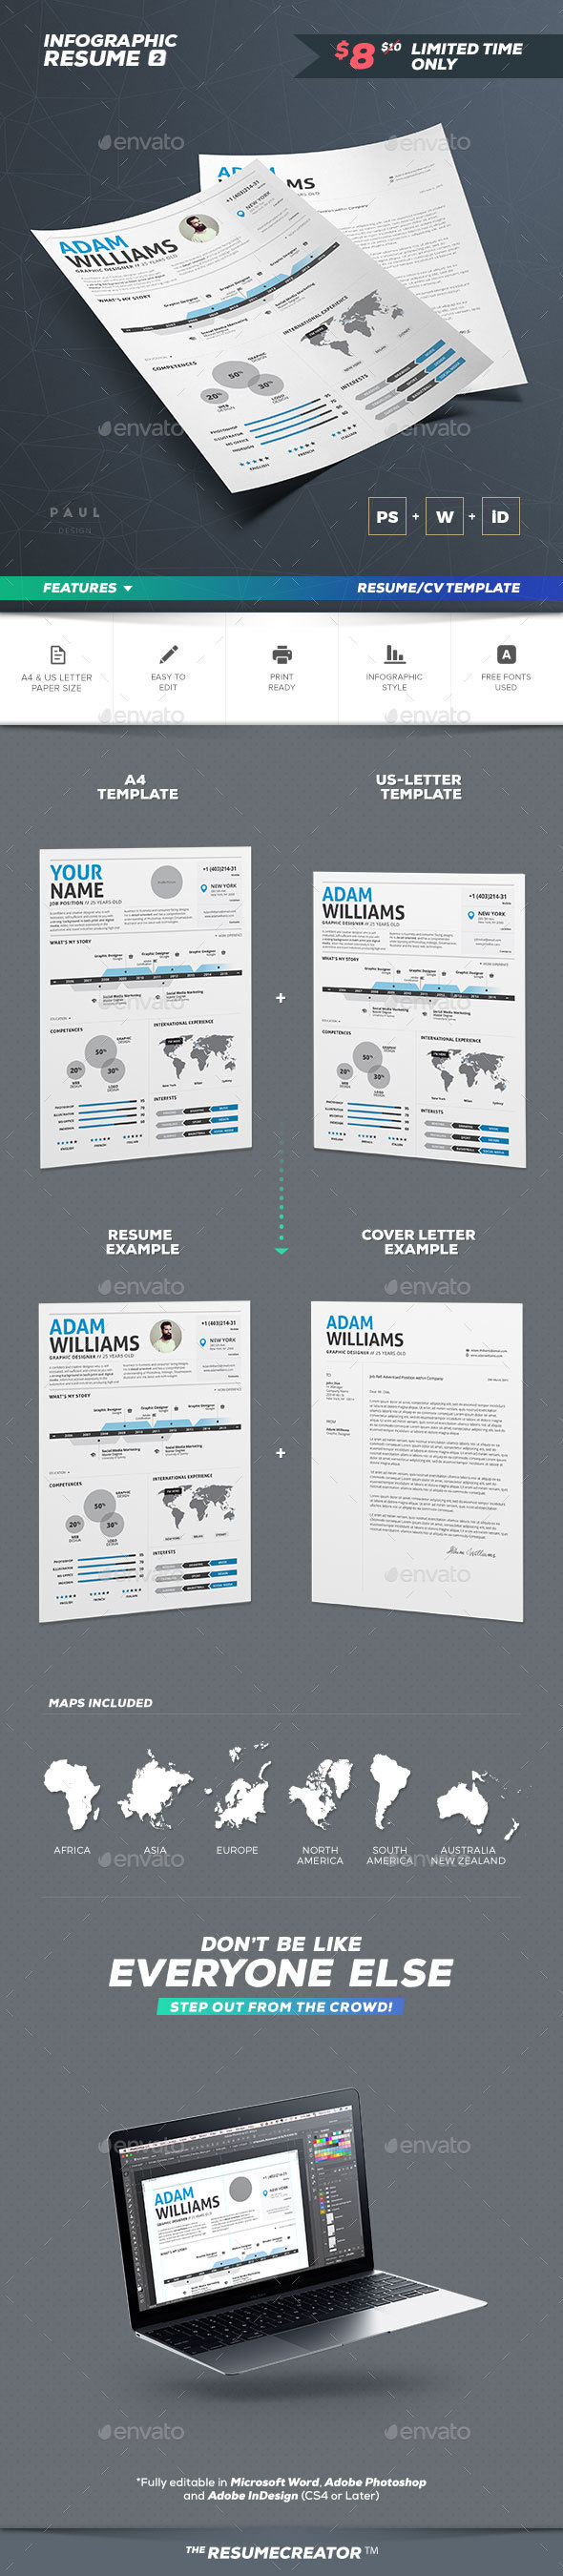 Infographic Resume Vol. 2 - Resumes Stationery